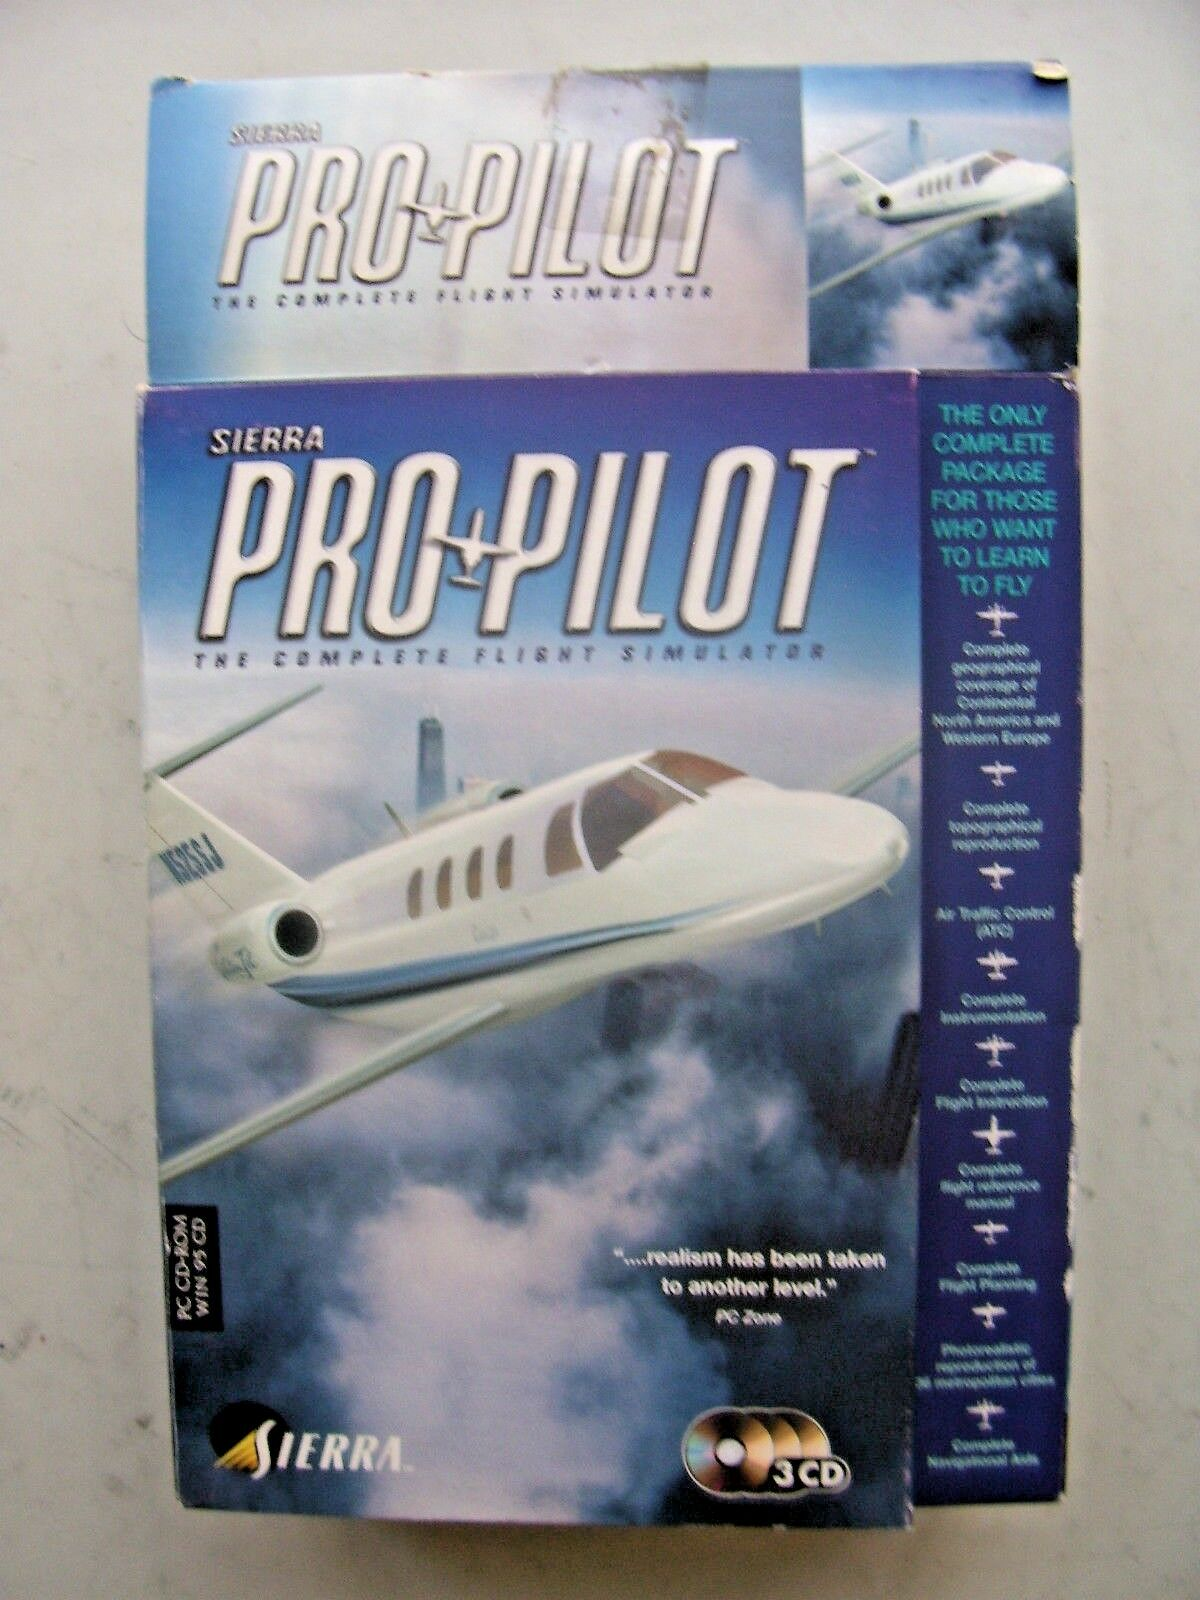 Sierra Pro Pilot 99 (PC: Windows, 1998) - Big Box Edition